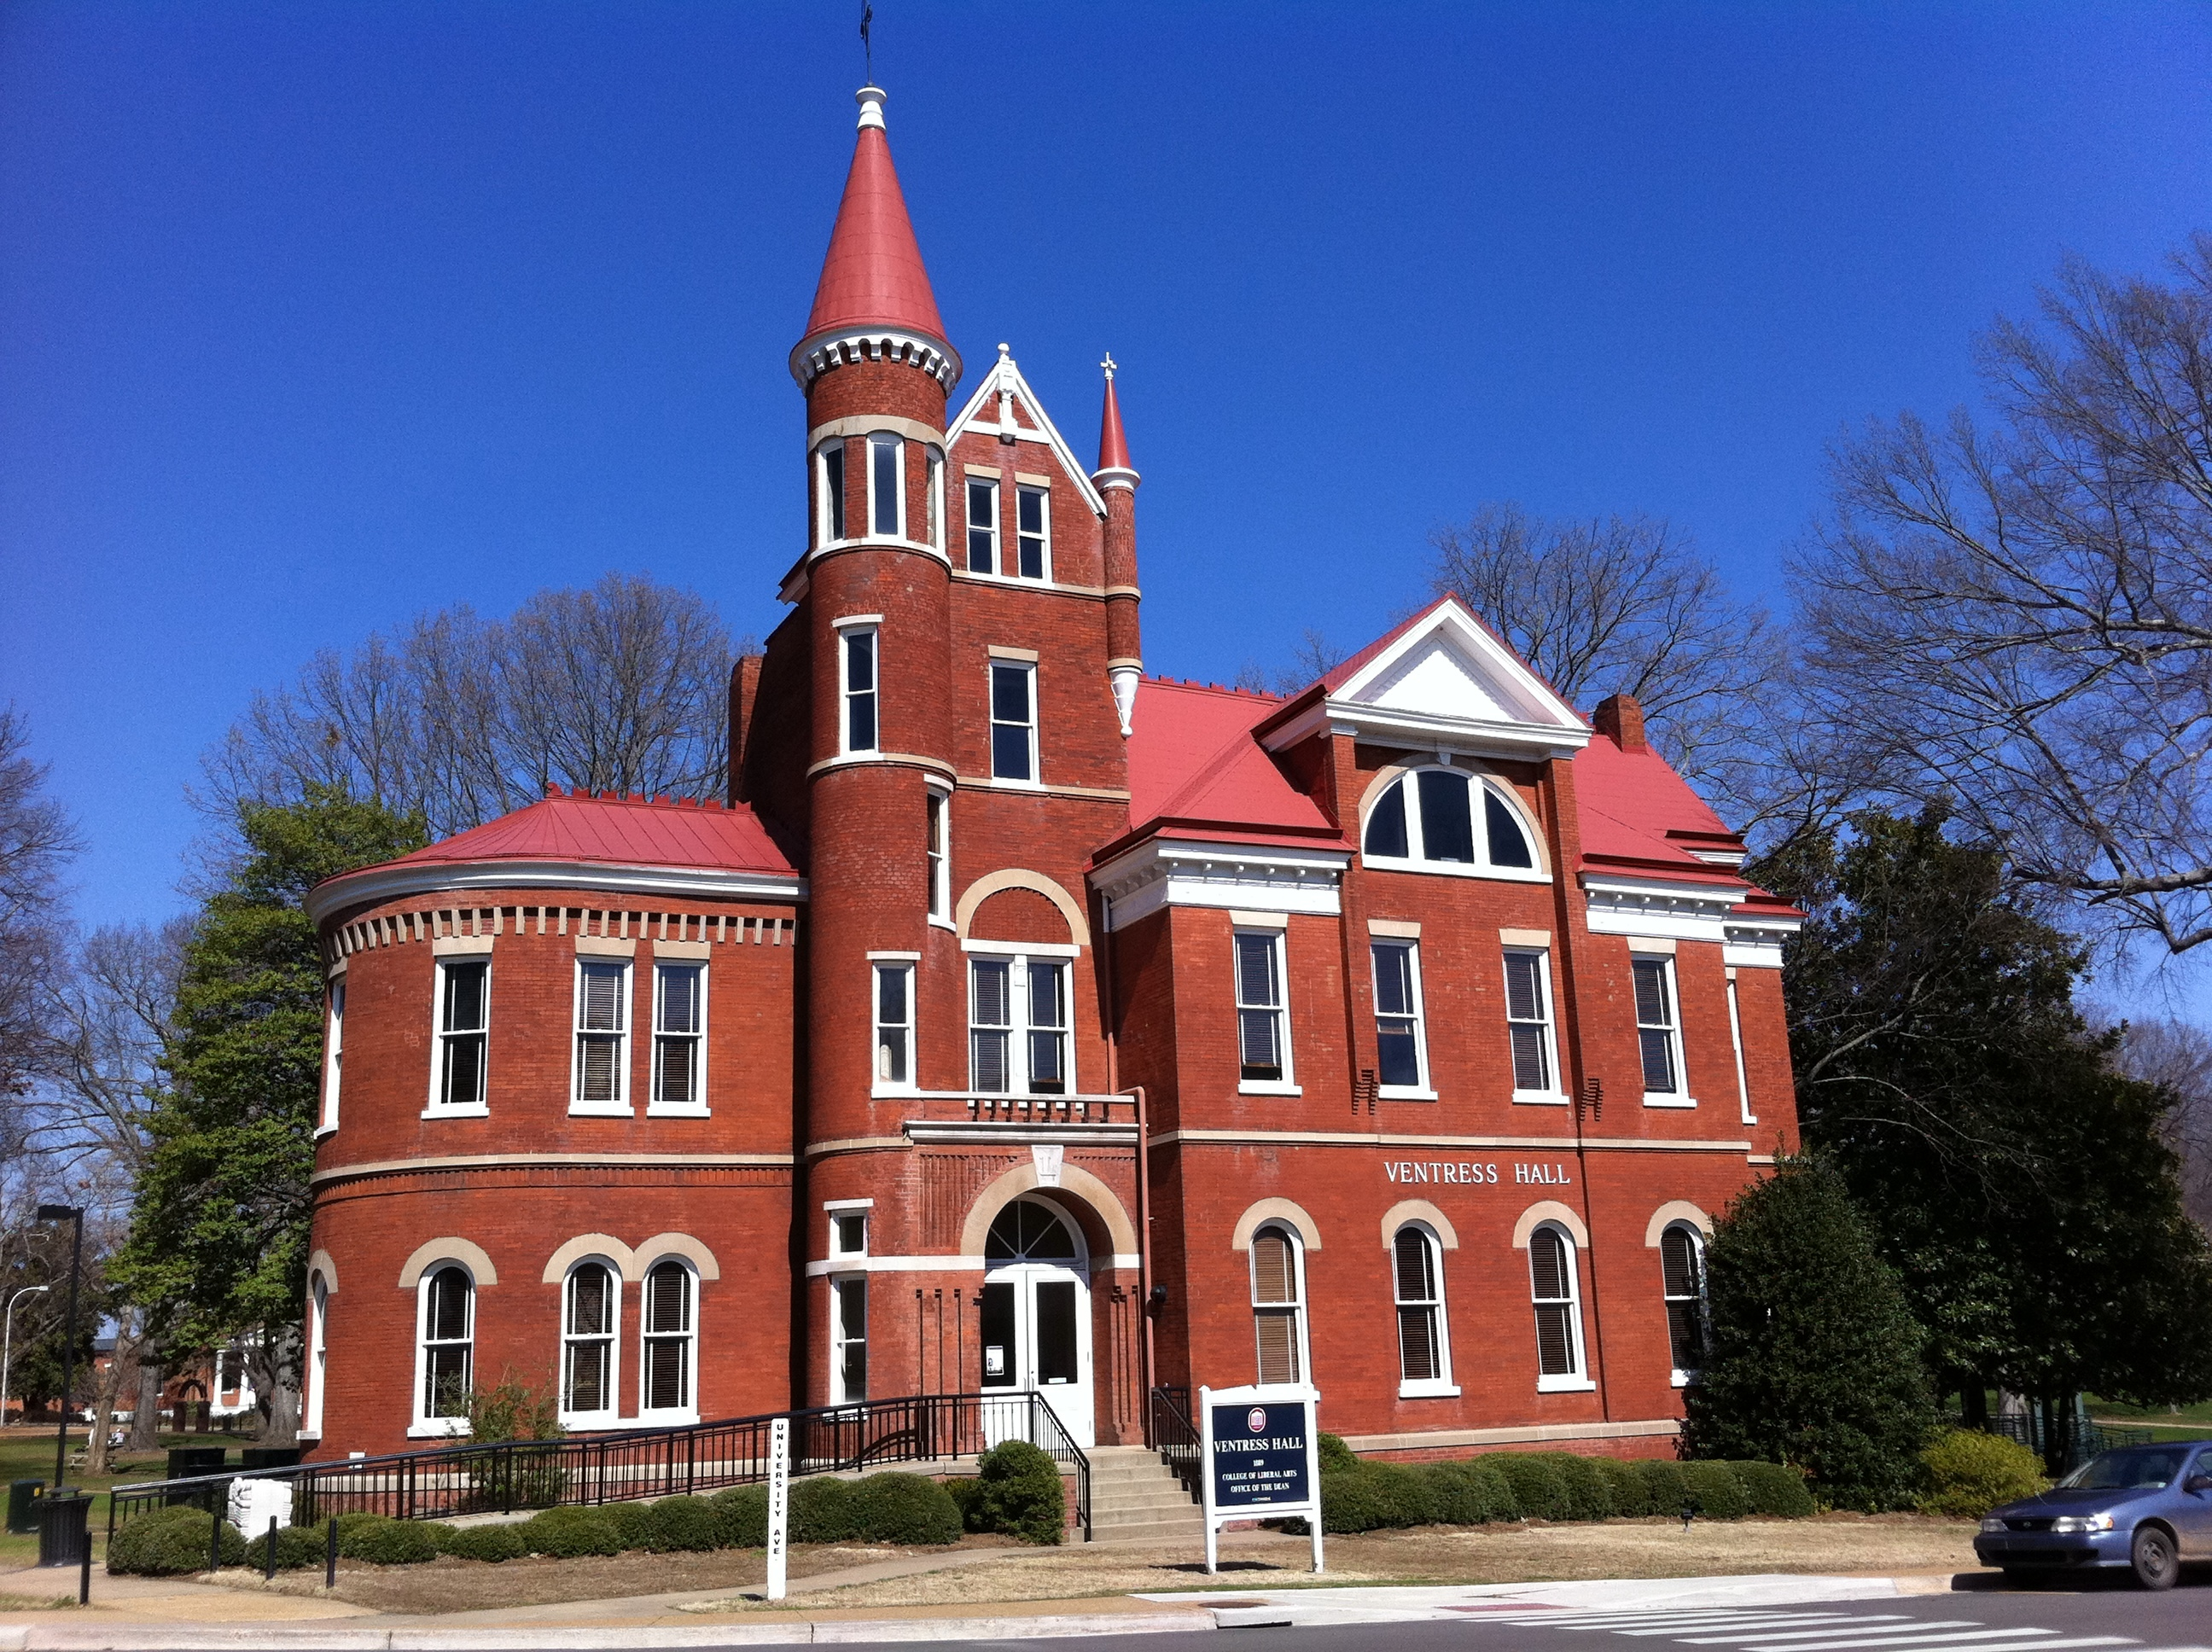 Ventress Hall was built in 1889 and currently houses the University of Mississippi's College of Liberal Arts and Sciences